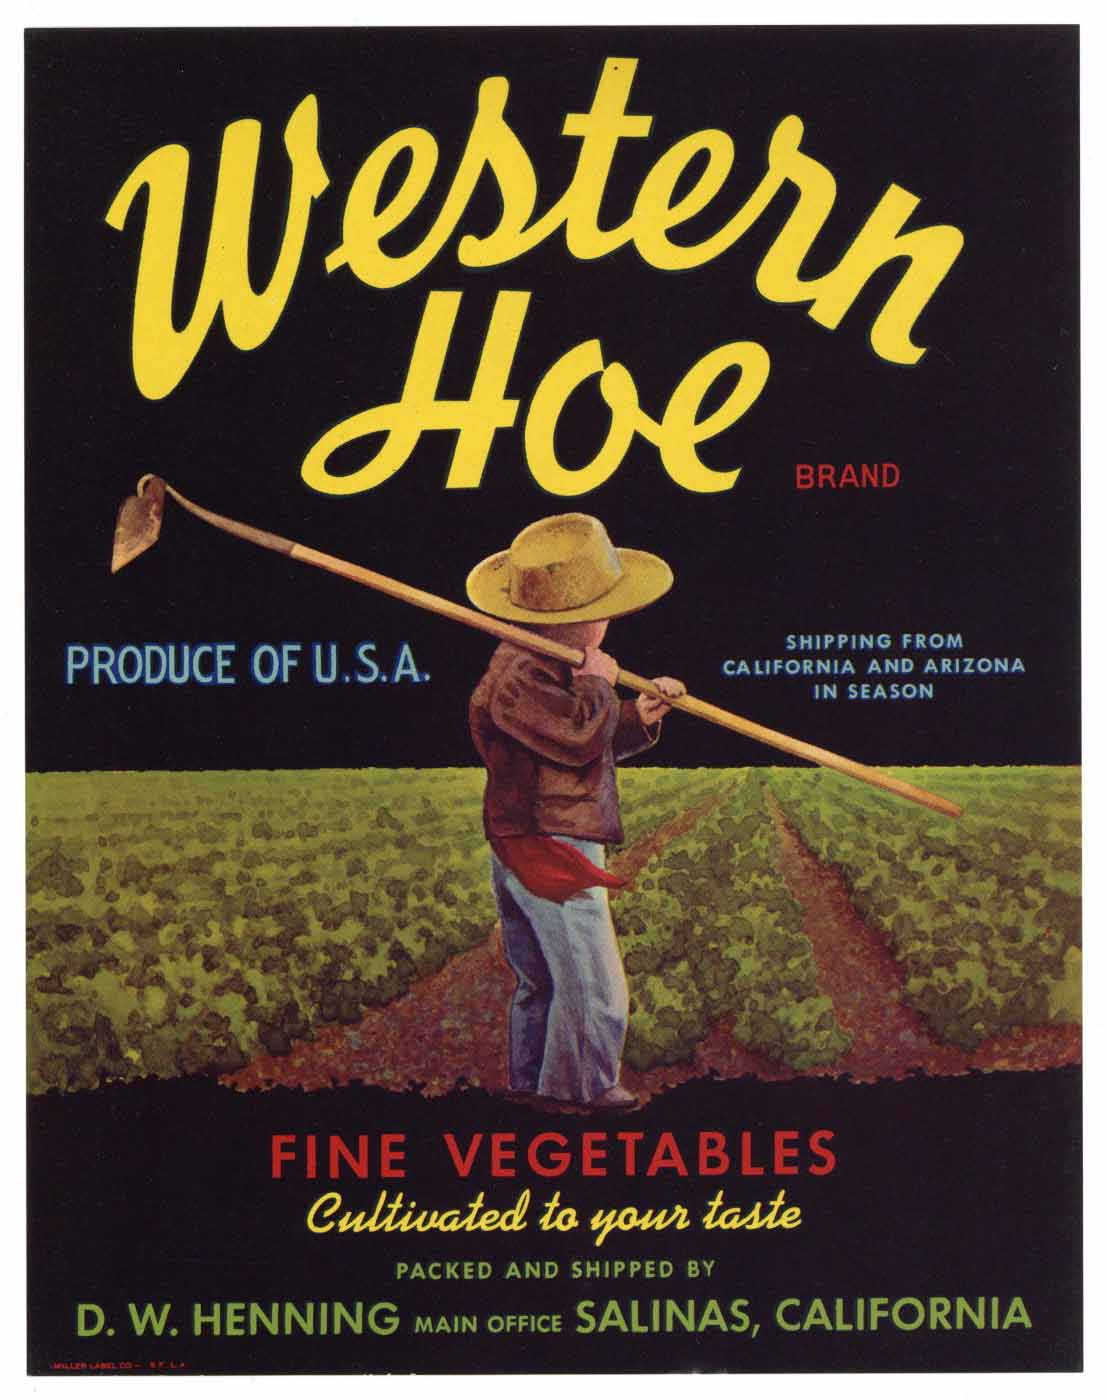 Western Hoe Brand Vintage Salinas Vegetable Crate Label